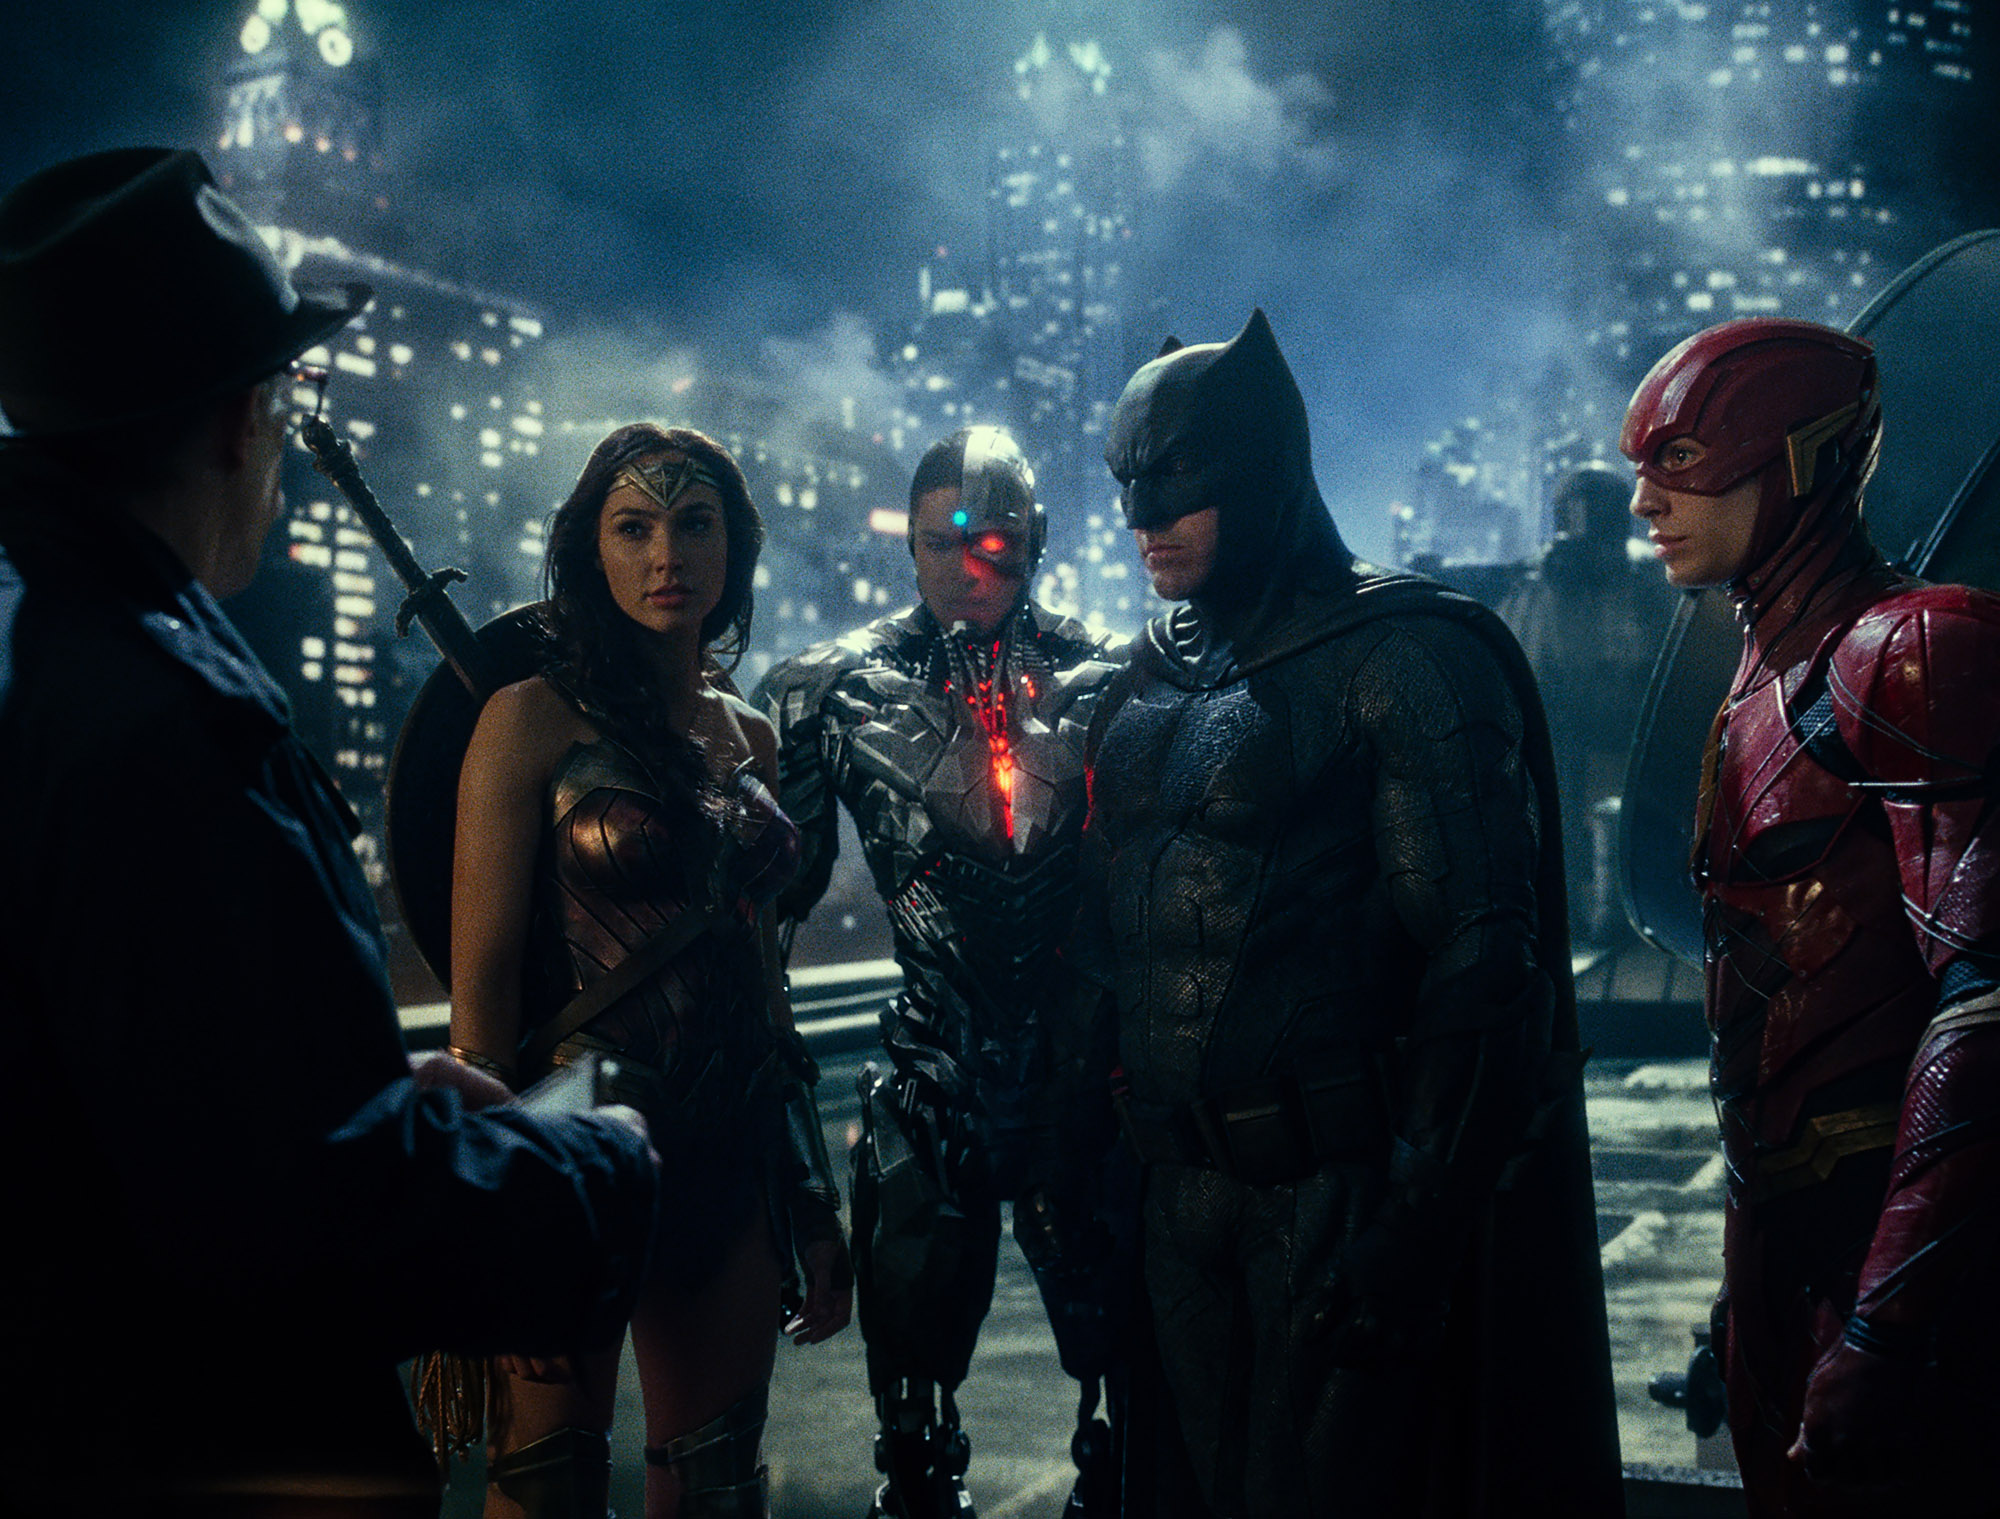 justice-league-cast-21.jpg